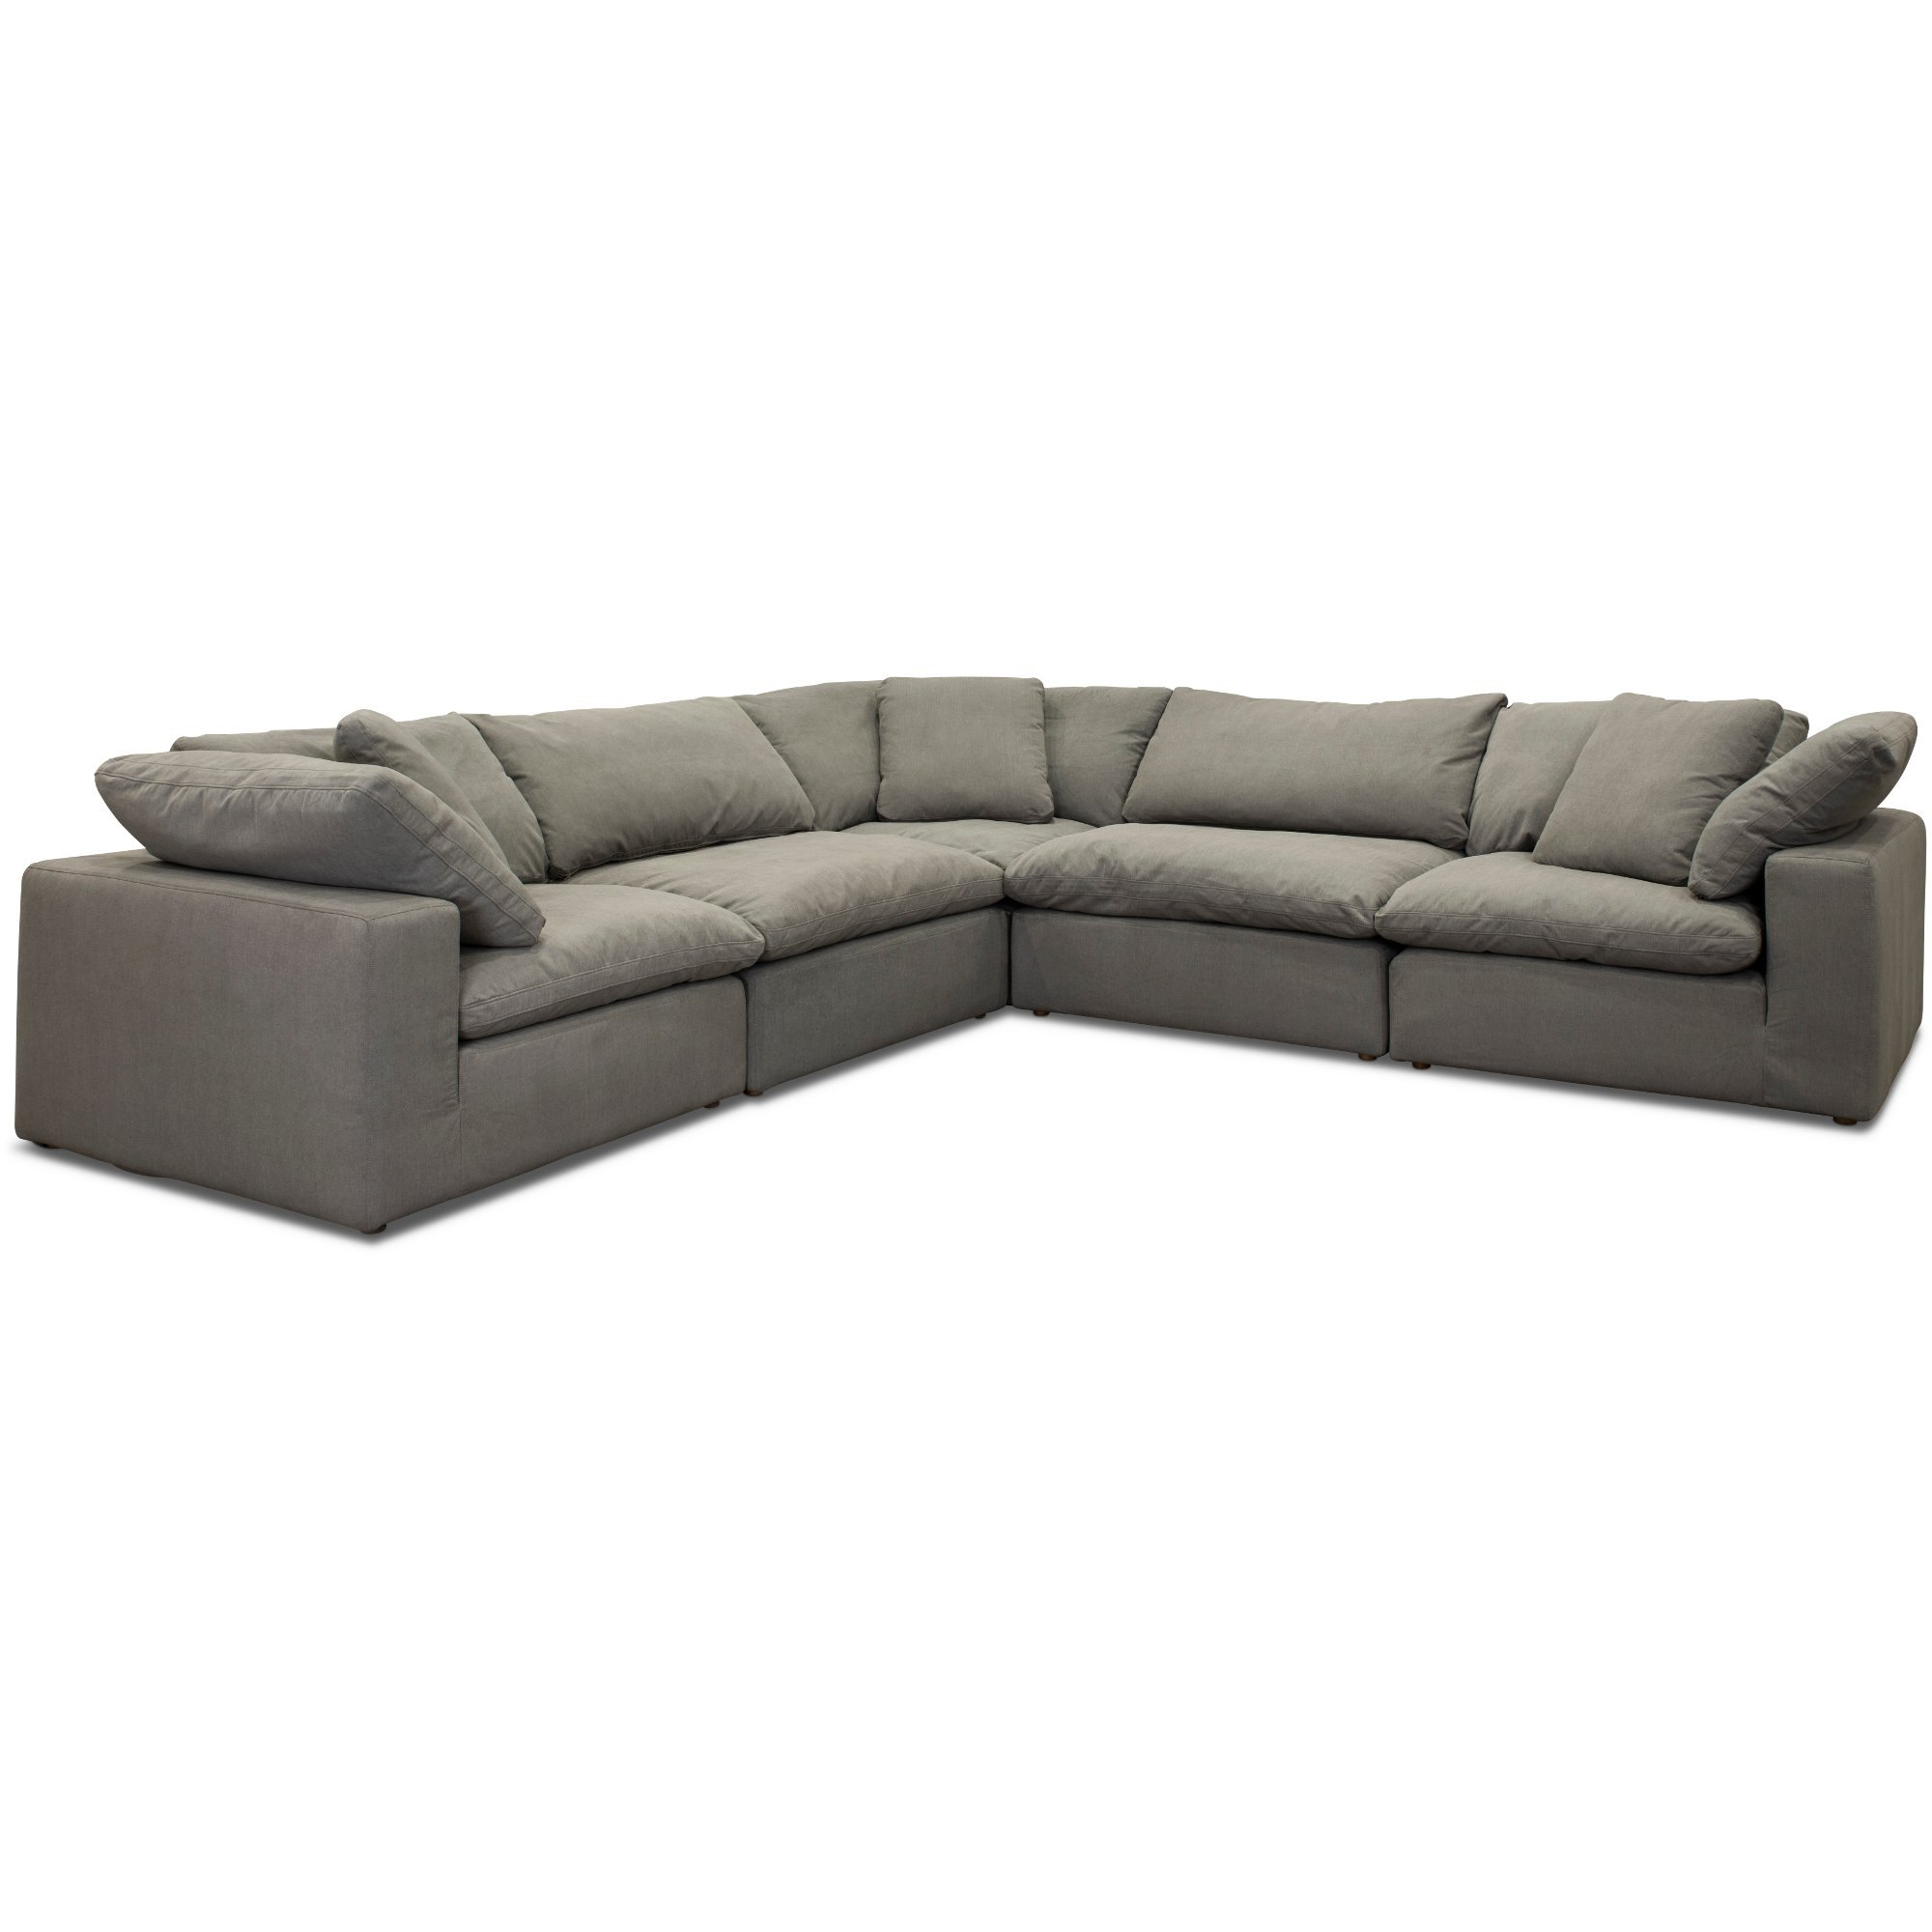 Popular Denali Light Grey 6 Piece Reclining Sectionals With 2 Power Headrests With Regard To Perfect Product Image Gennaro Pc Lear Sectional Lear Living Rooms (Gallery 14 of 20)